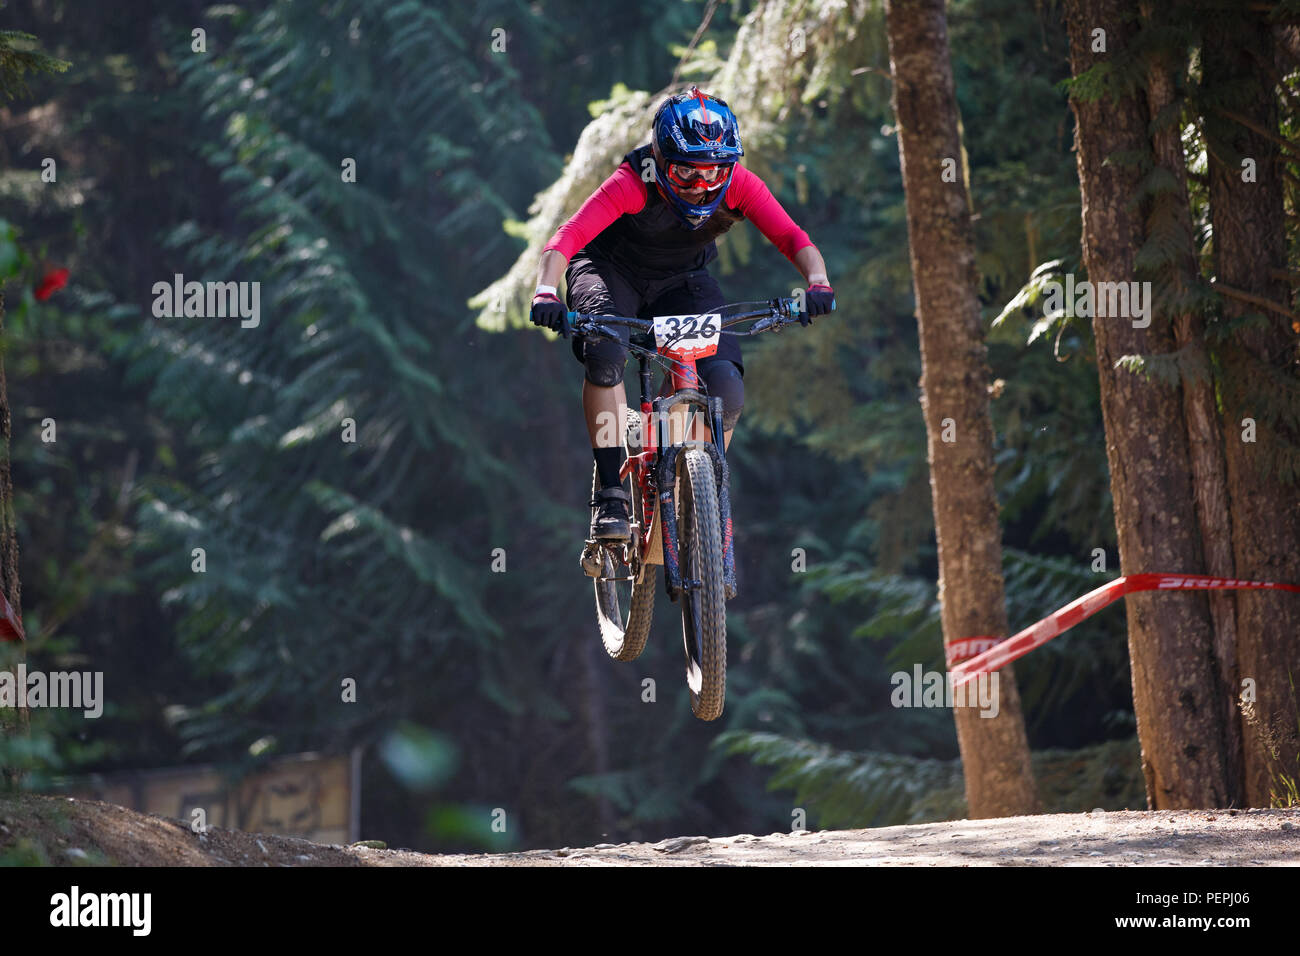 Leonie Picton (AUS) riding to fifth place pro women in the 2018 Crankworx Fox Air DH competition in Whistler, BC, Canada. August 15, 2018. - Stock Image